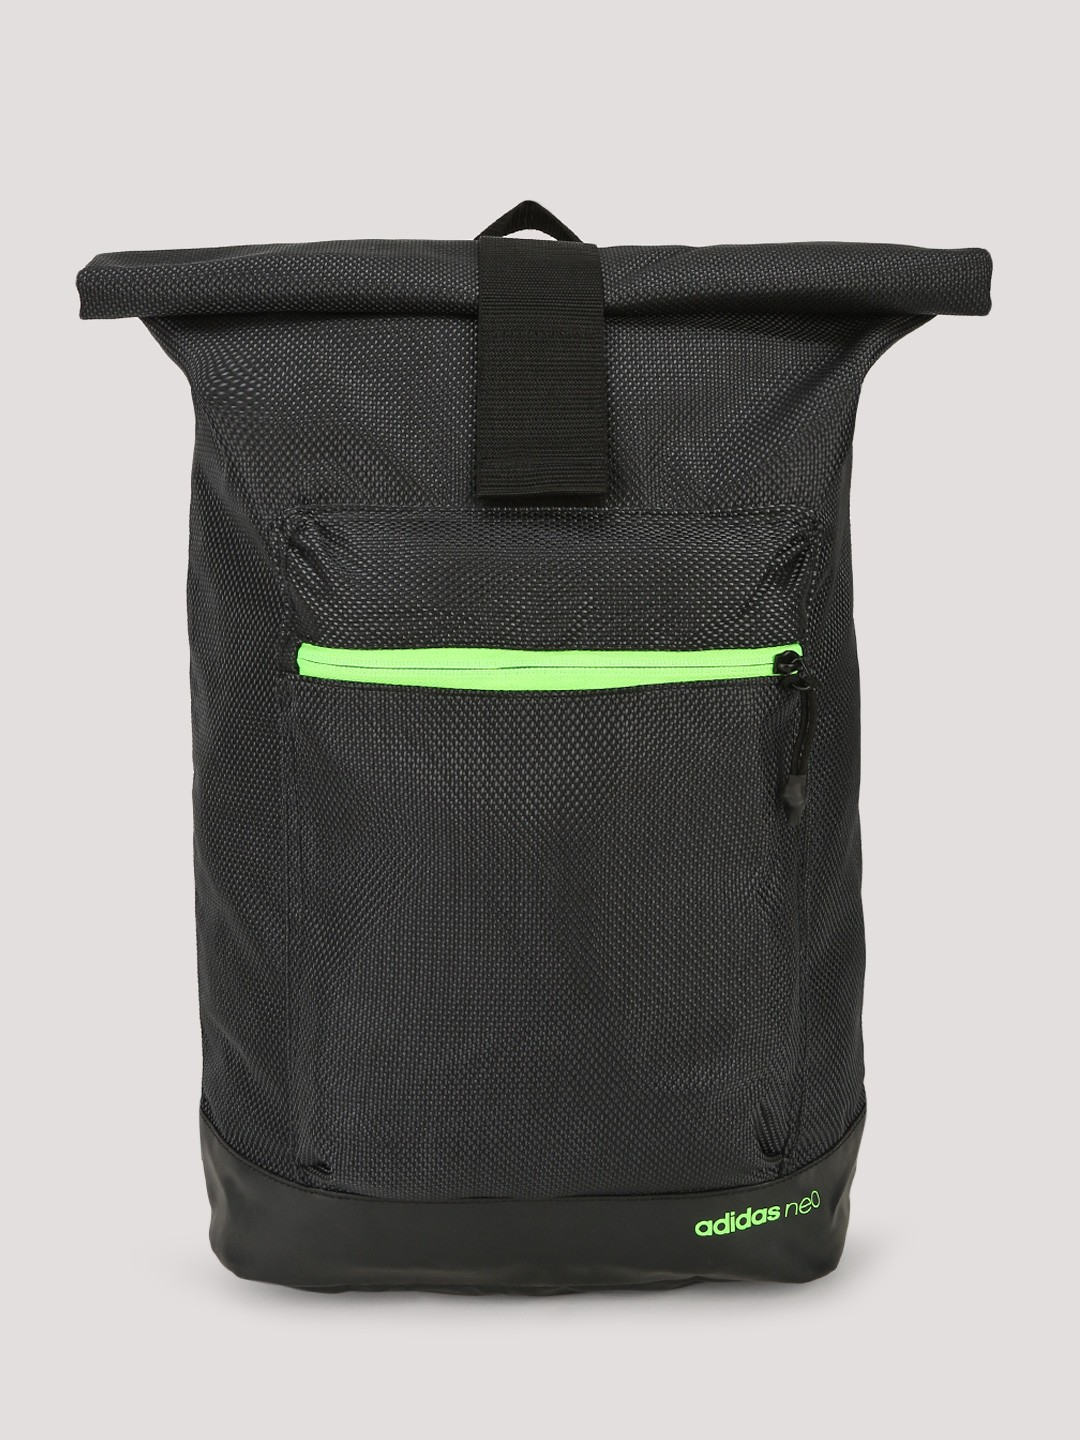 buy adidas neo city backpack with rolltop detailing for. Black Bedroom Furniture Sets. Home Design Ideas